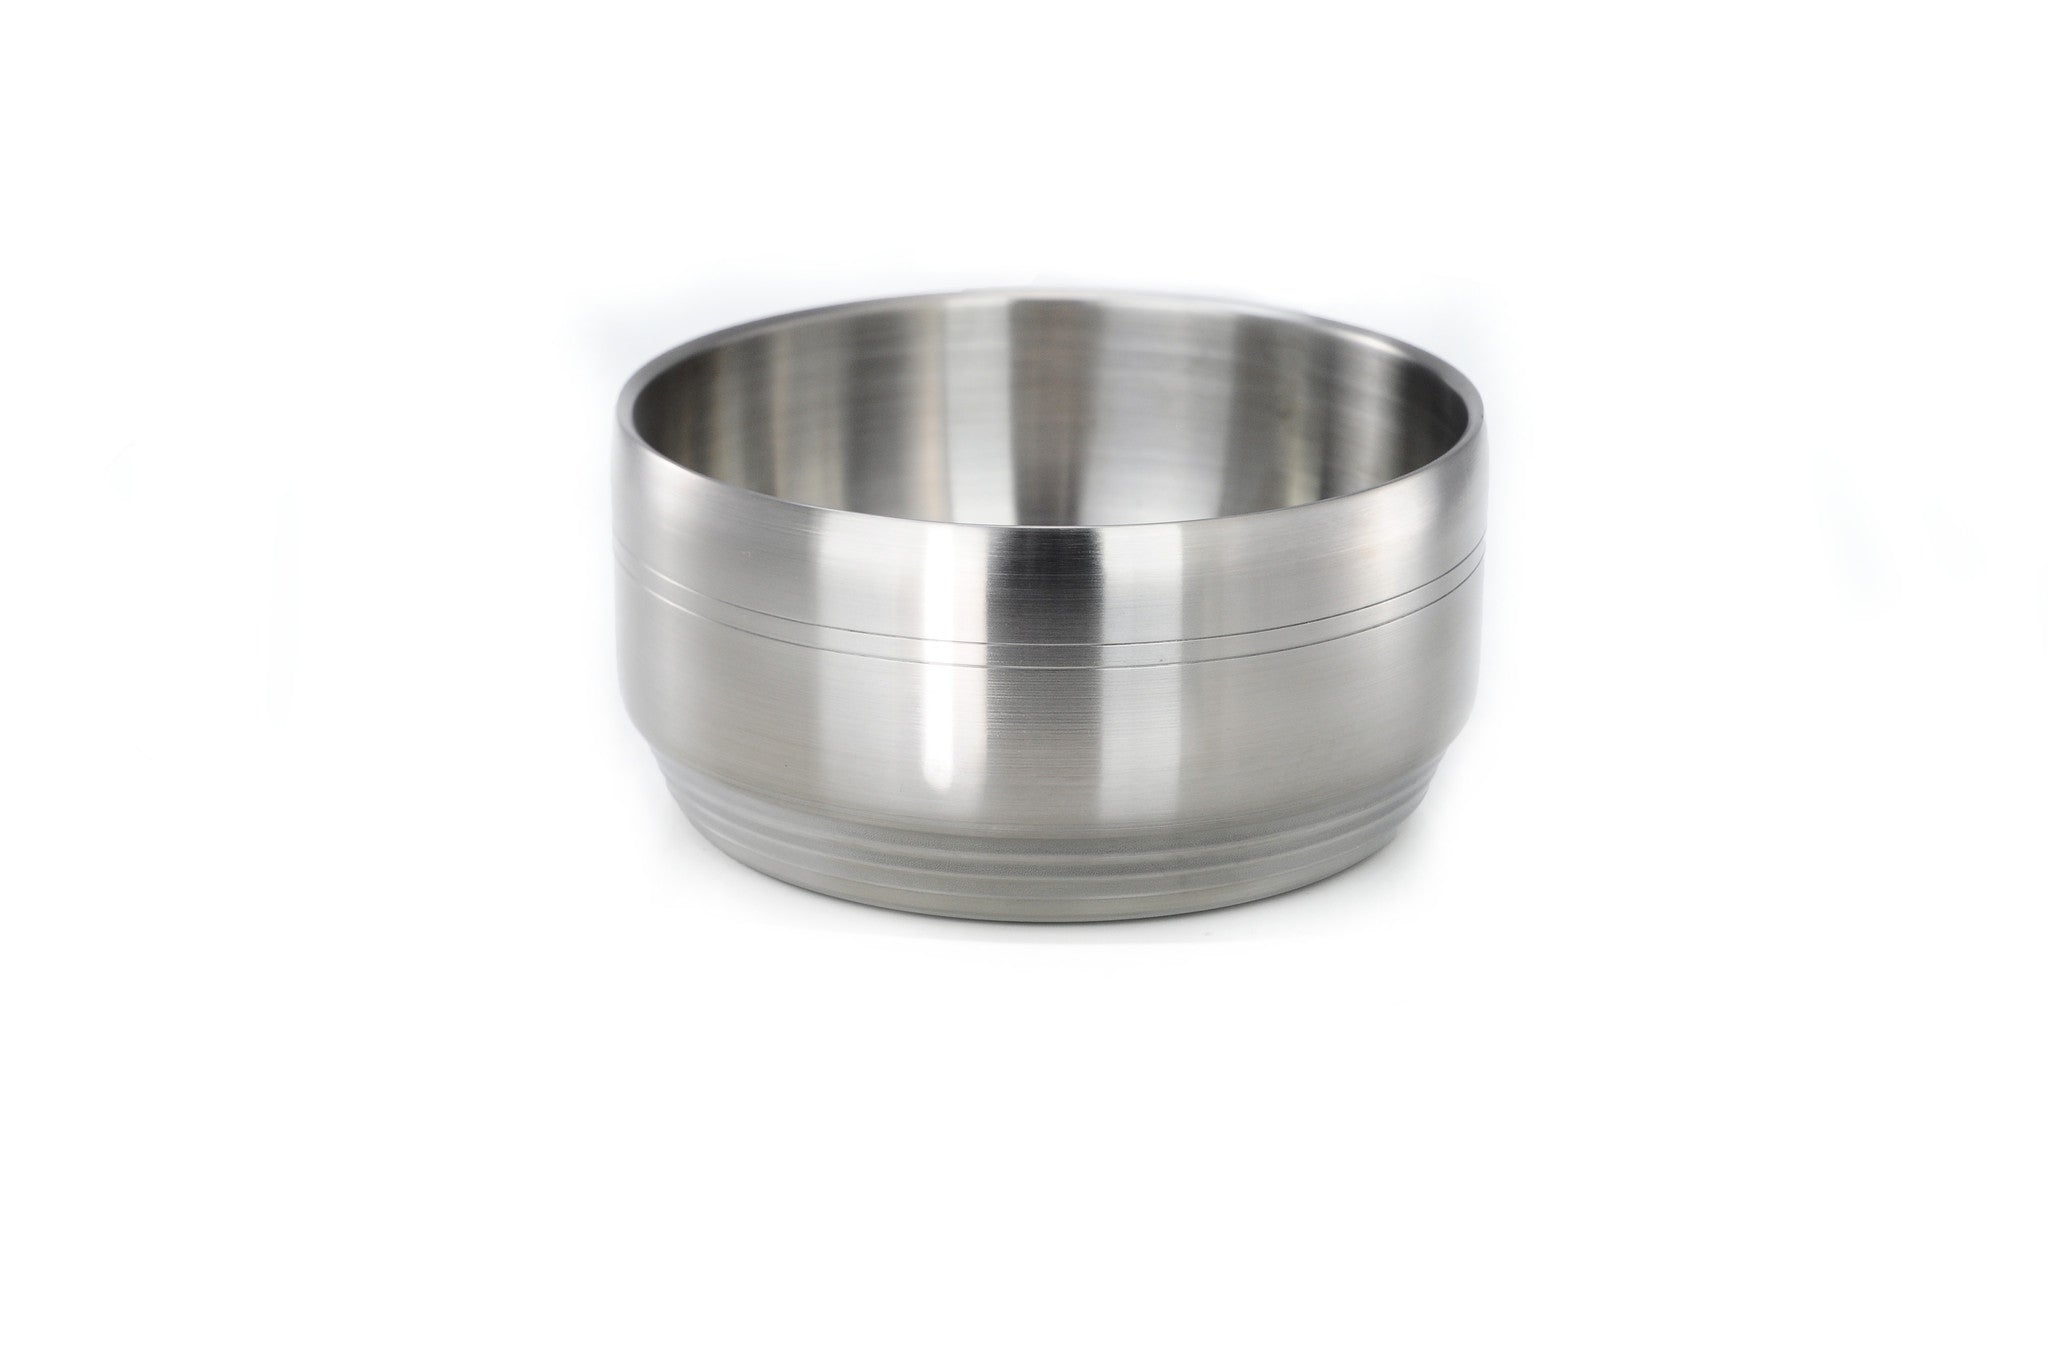 Double Wall Satin Stainless Steel Bowls & Dishes 이중 샤틴 스텐레스 그릇, Stainless Steel - eKitchenary